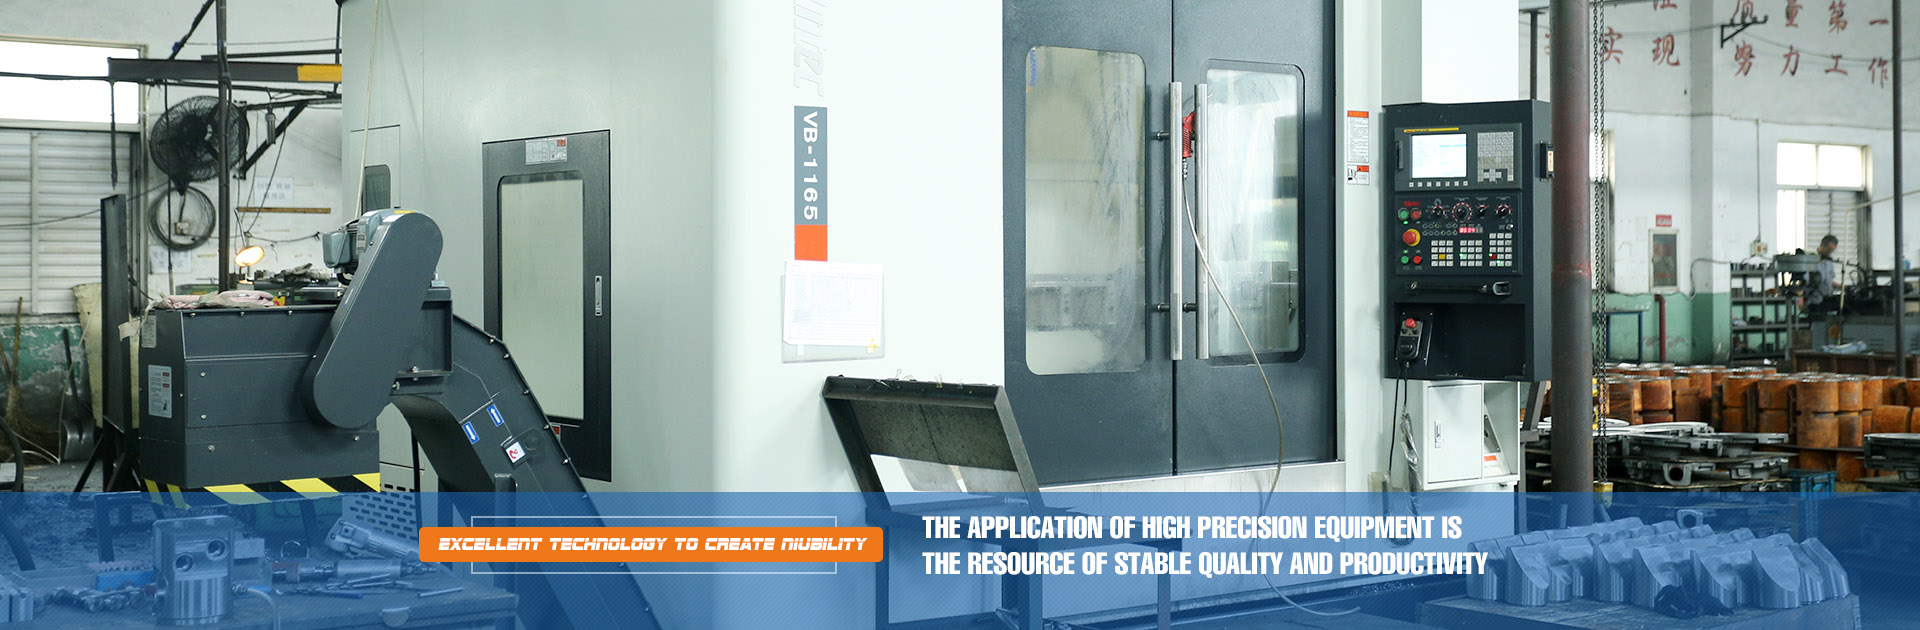 The application of high precision equipment is the resource of stable quality and productivity